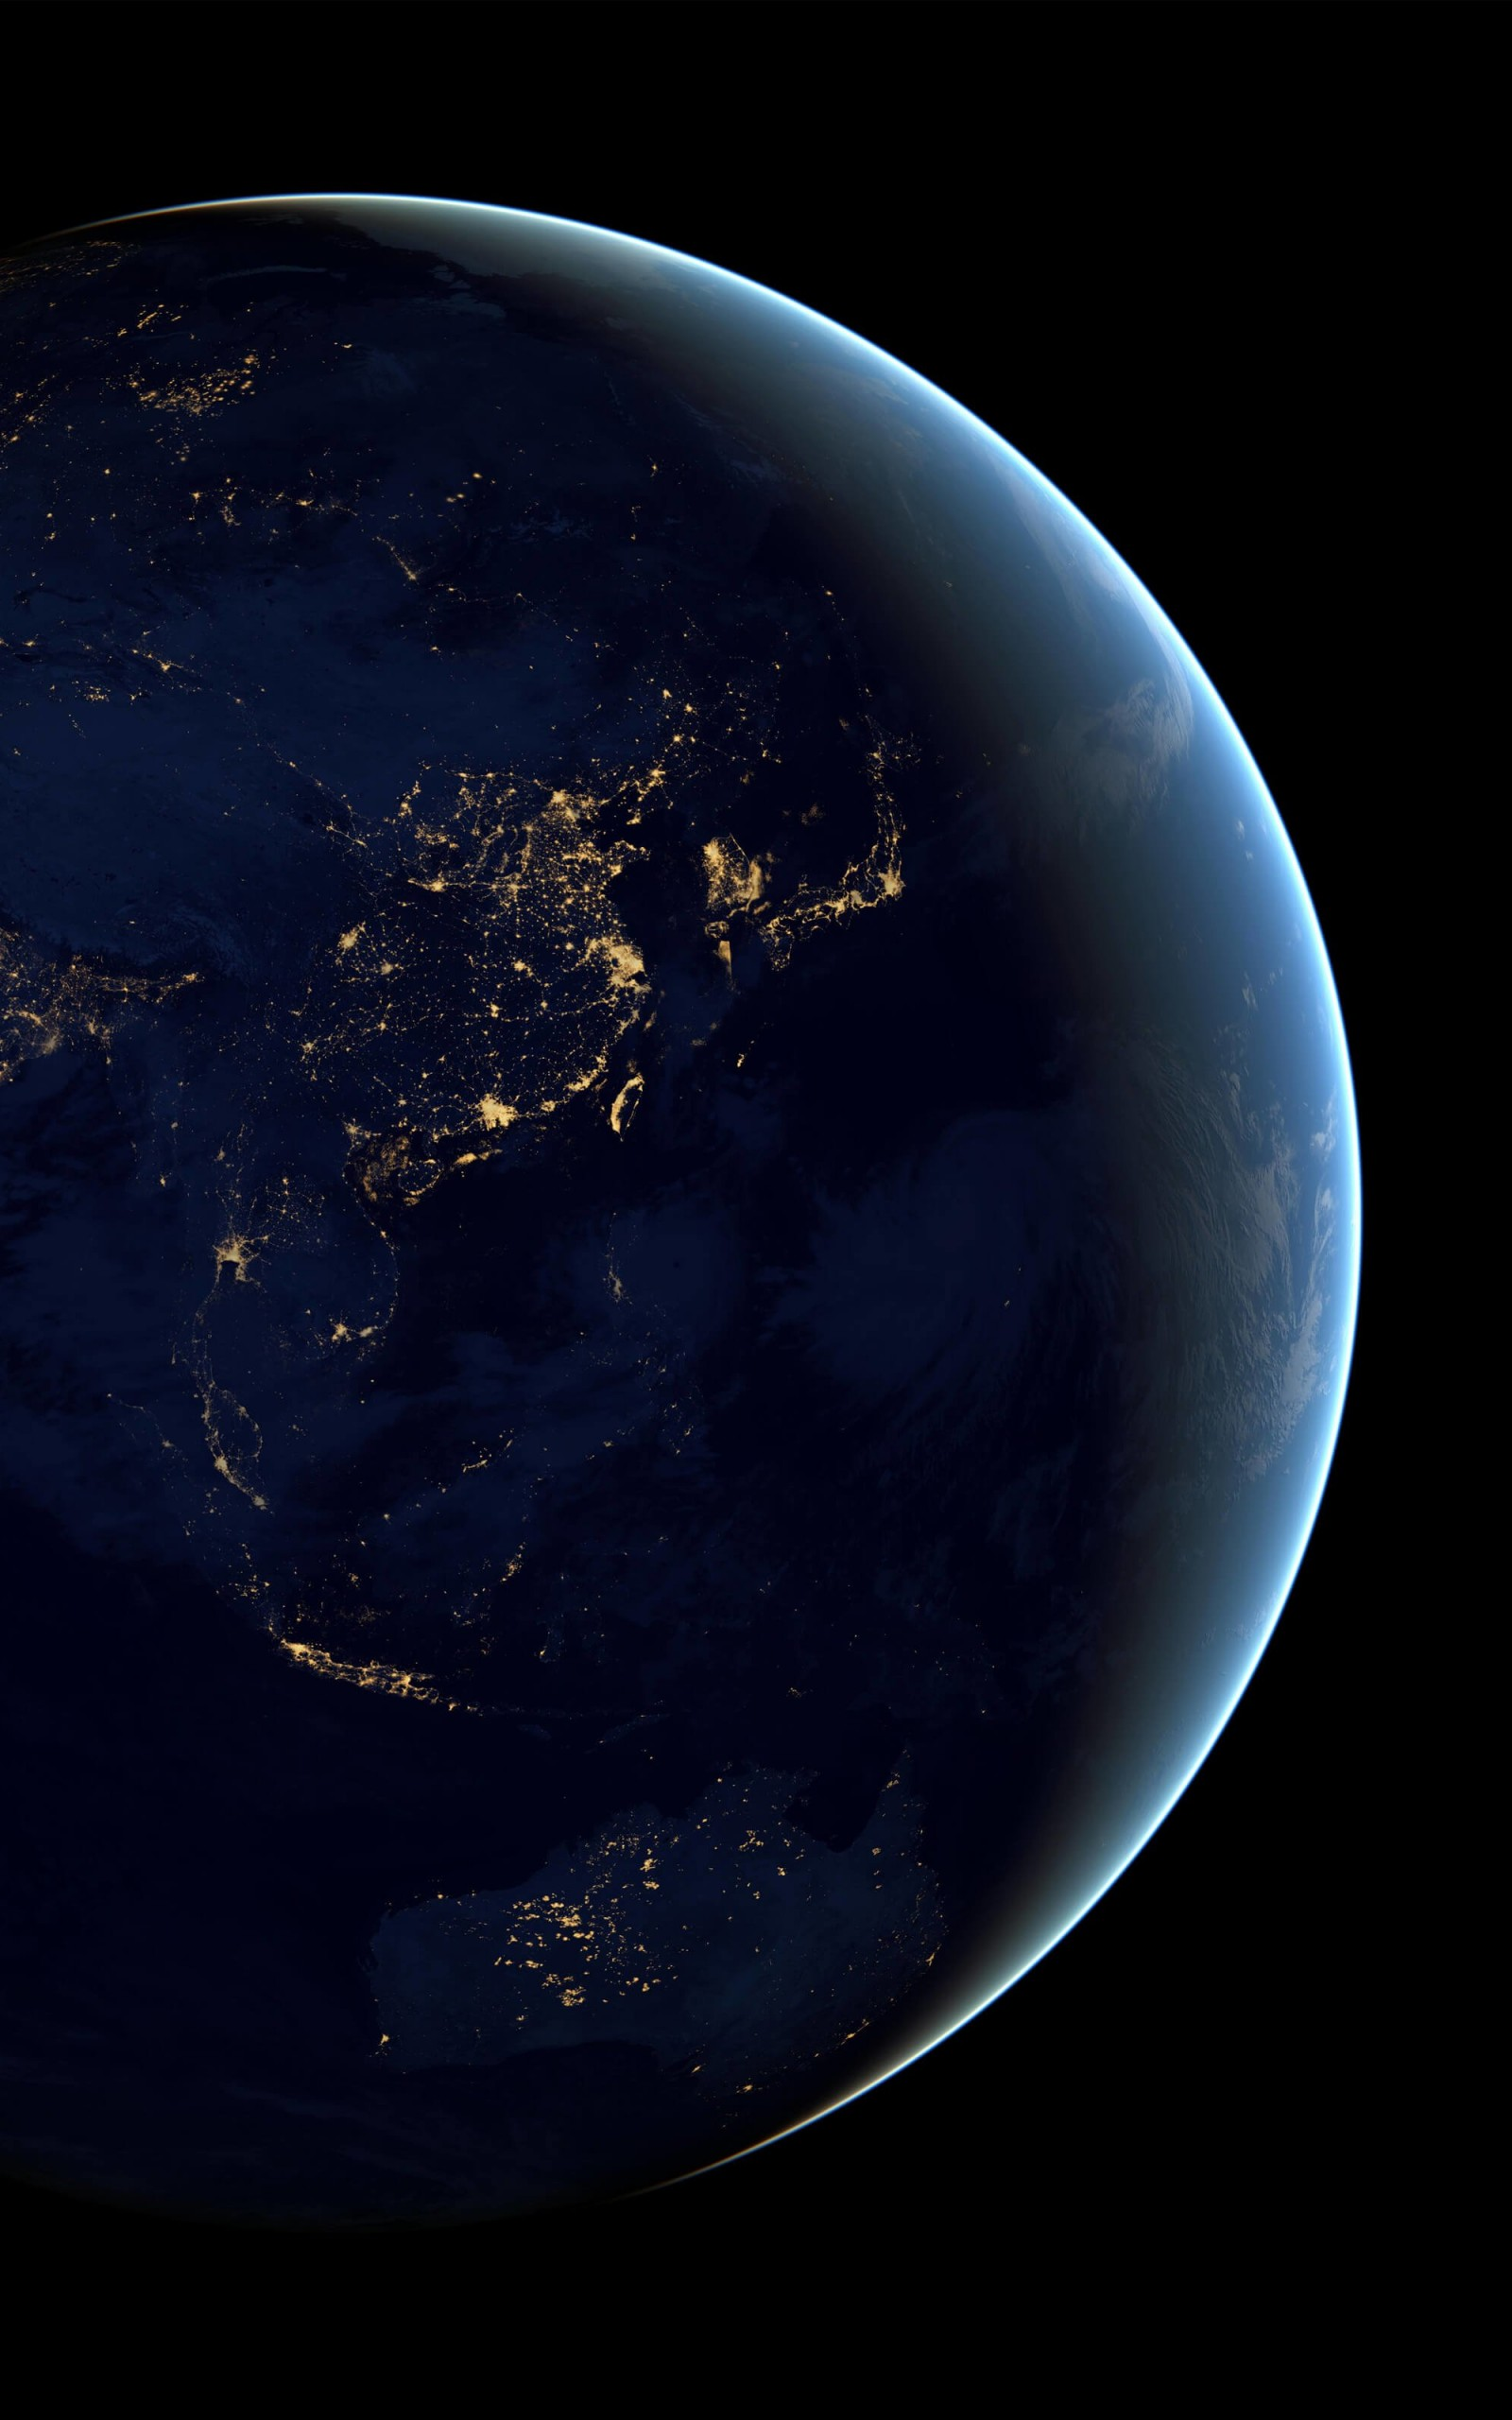 Earth At Night Seen From Space Wallpaper for Amazon Kindle Fire HDX 8.9